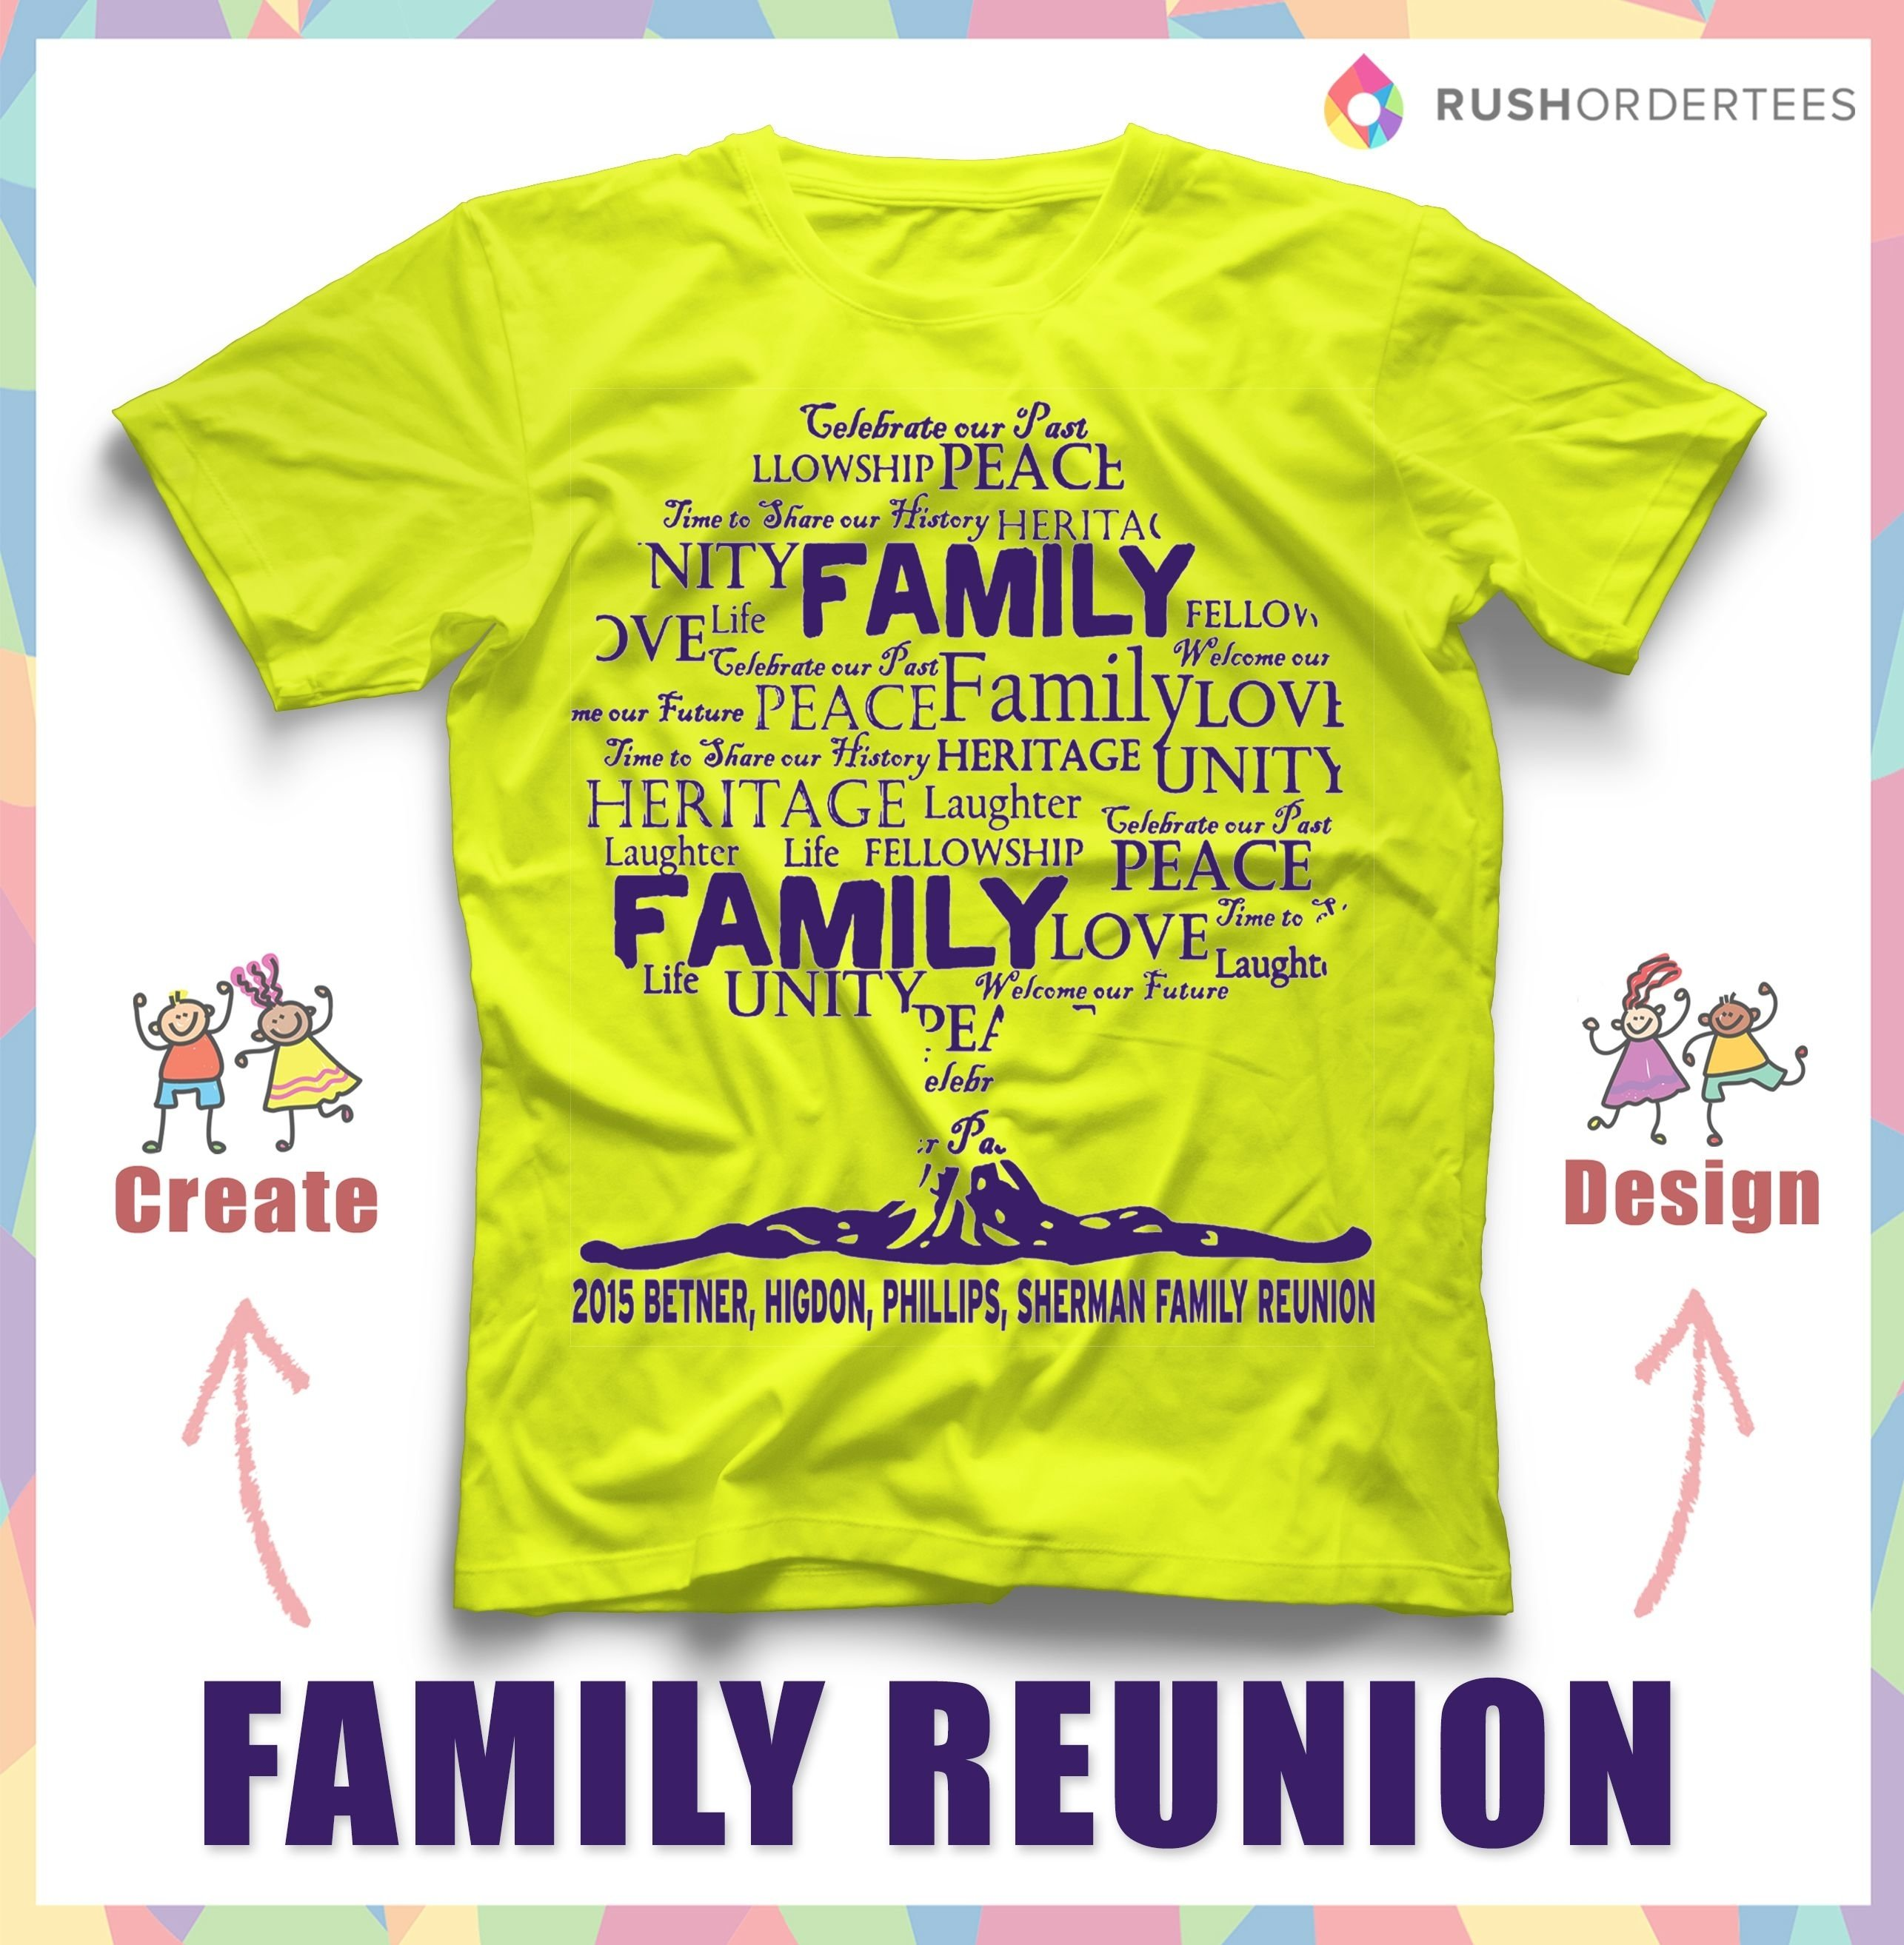 family reunion t-shirt ideas! create your custom family reunion t